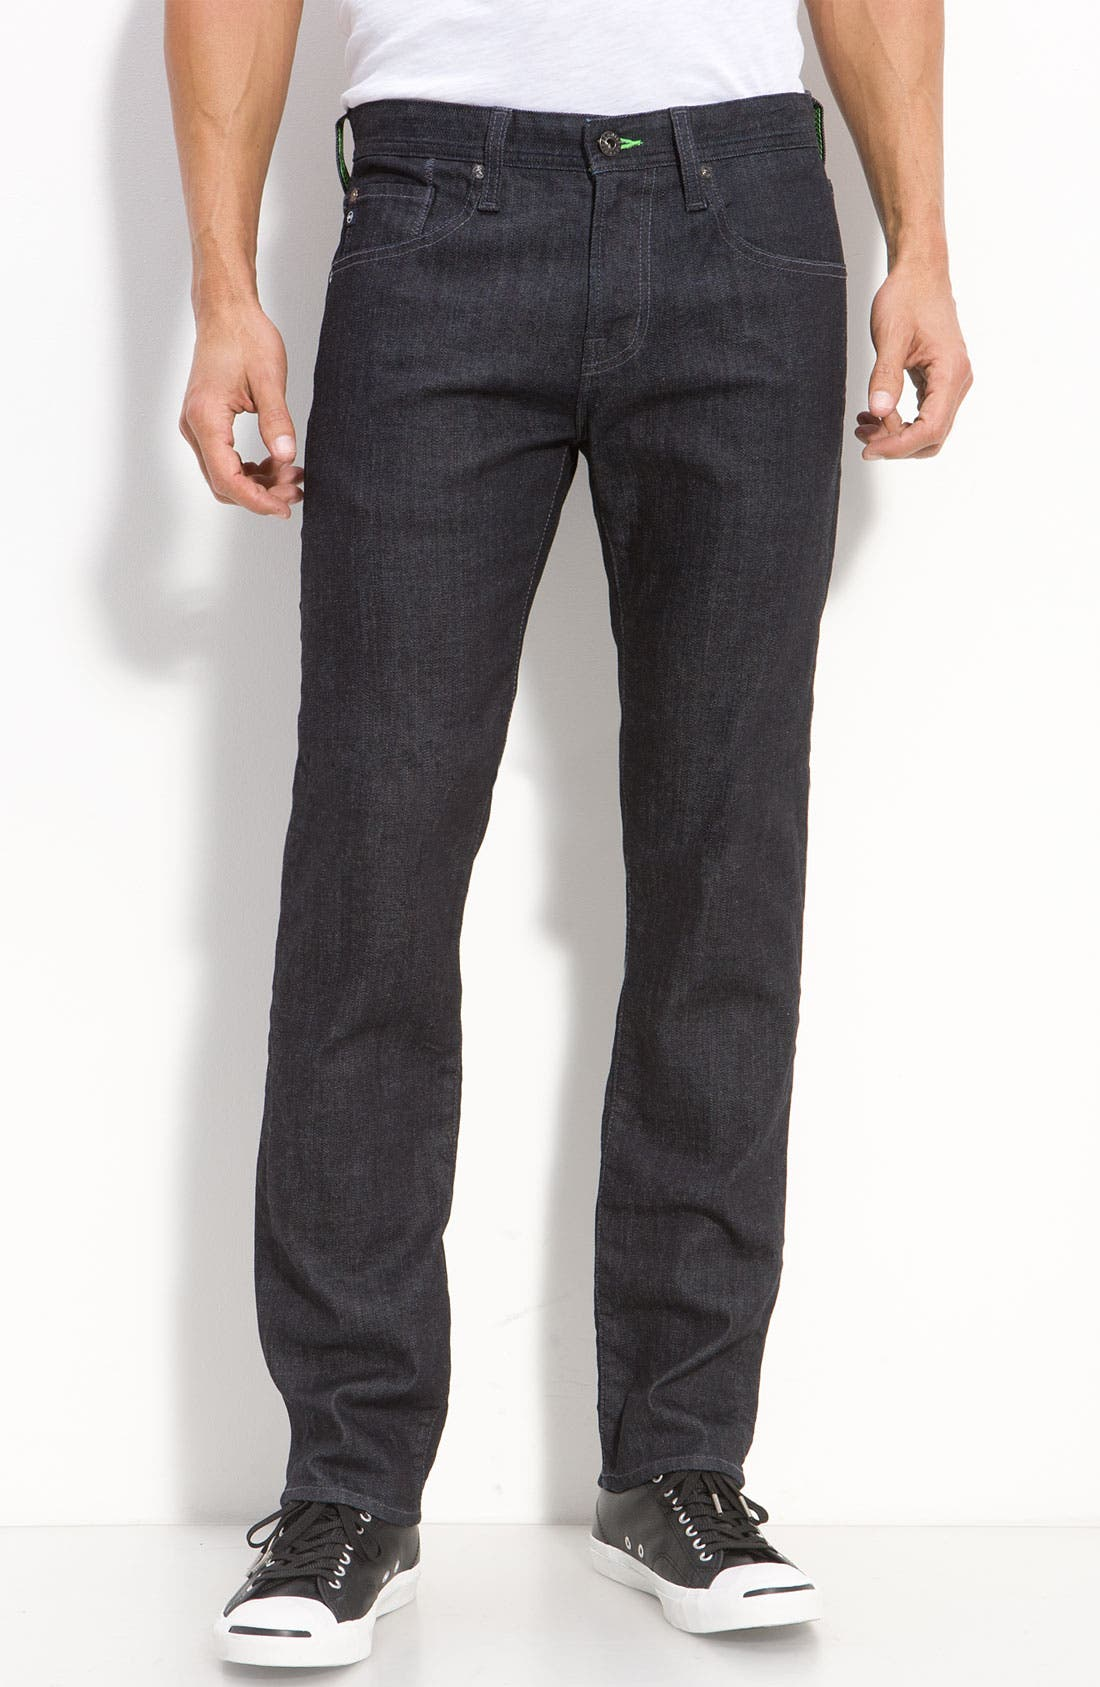 Alternate Image 1 Selected - AG Jeans 'Matchbox' Slim Straight Leg Jeans (Jake) (Save Now through 12/9)